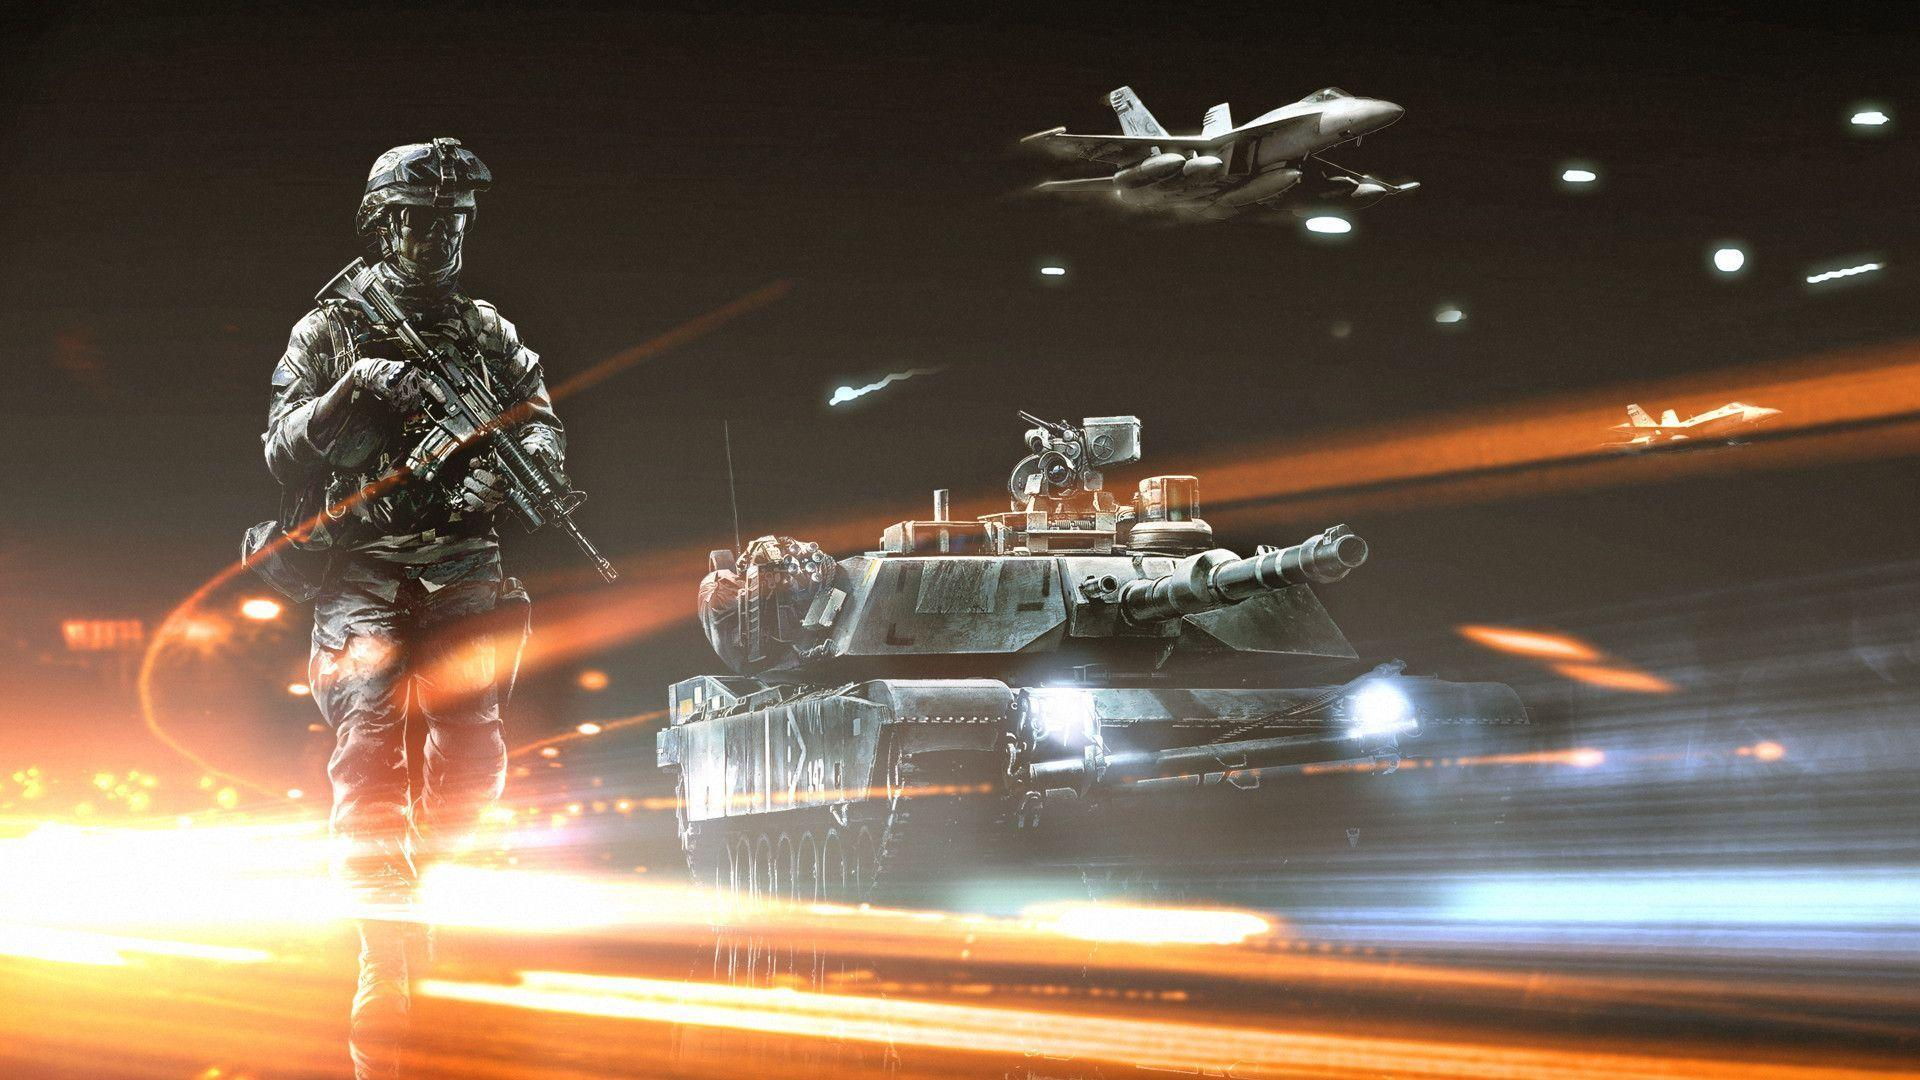 Battlefield 3 wallpapers 1080p wallpaper cave - Army wallpaper hd 1080p ...